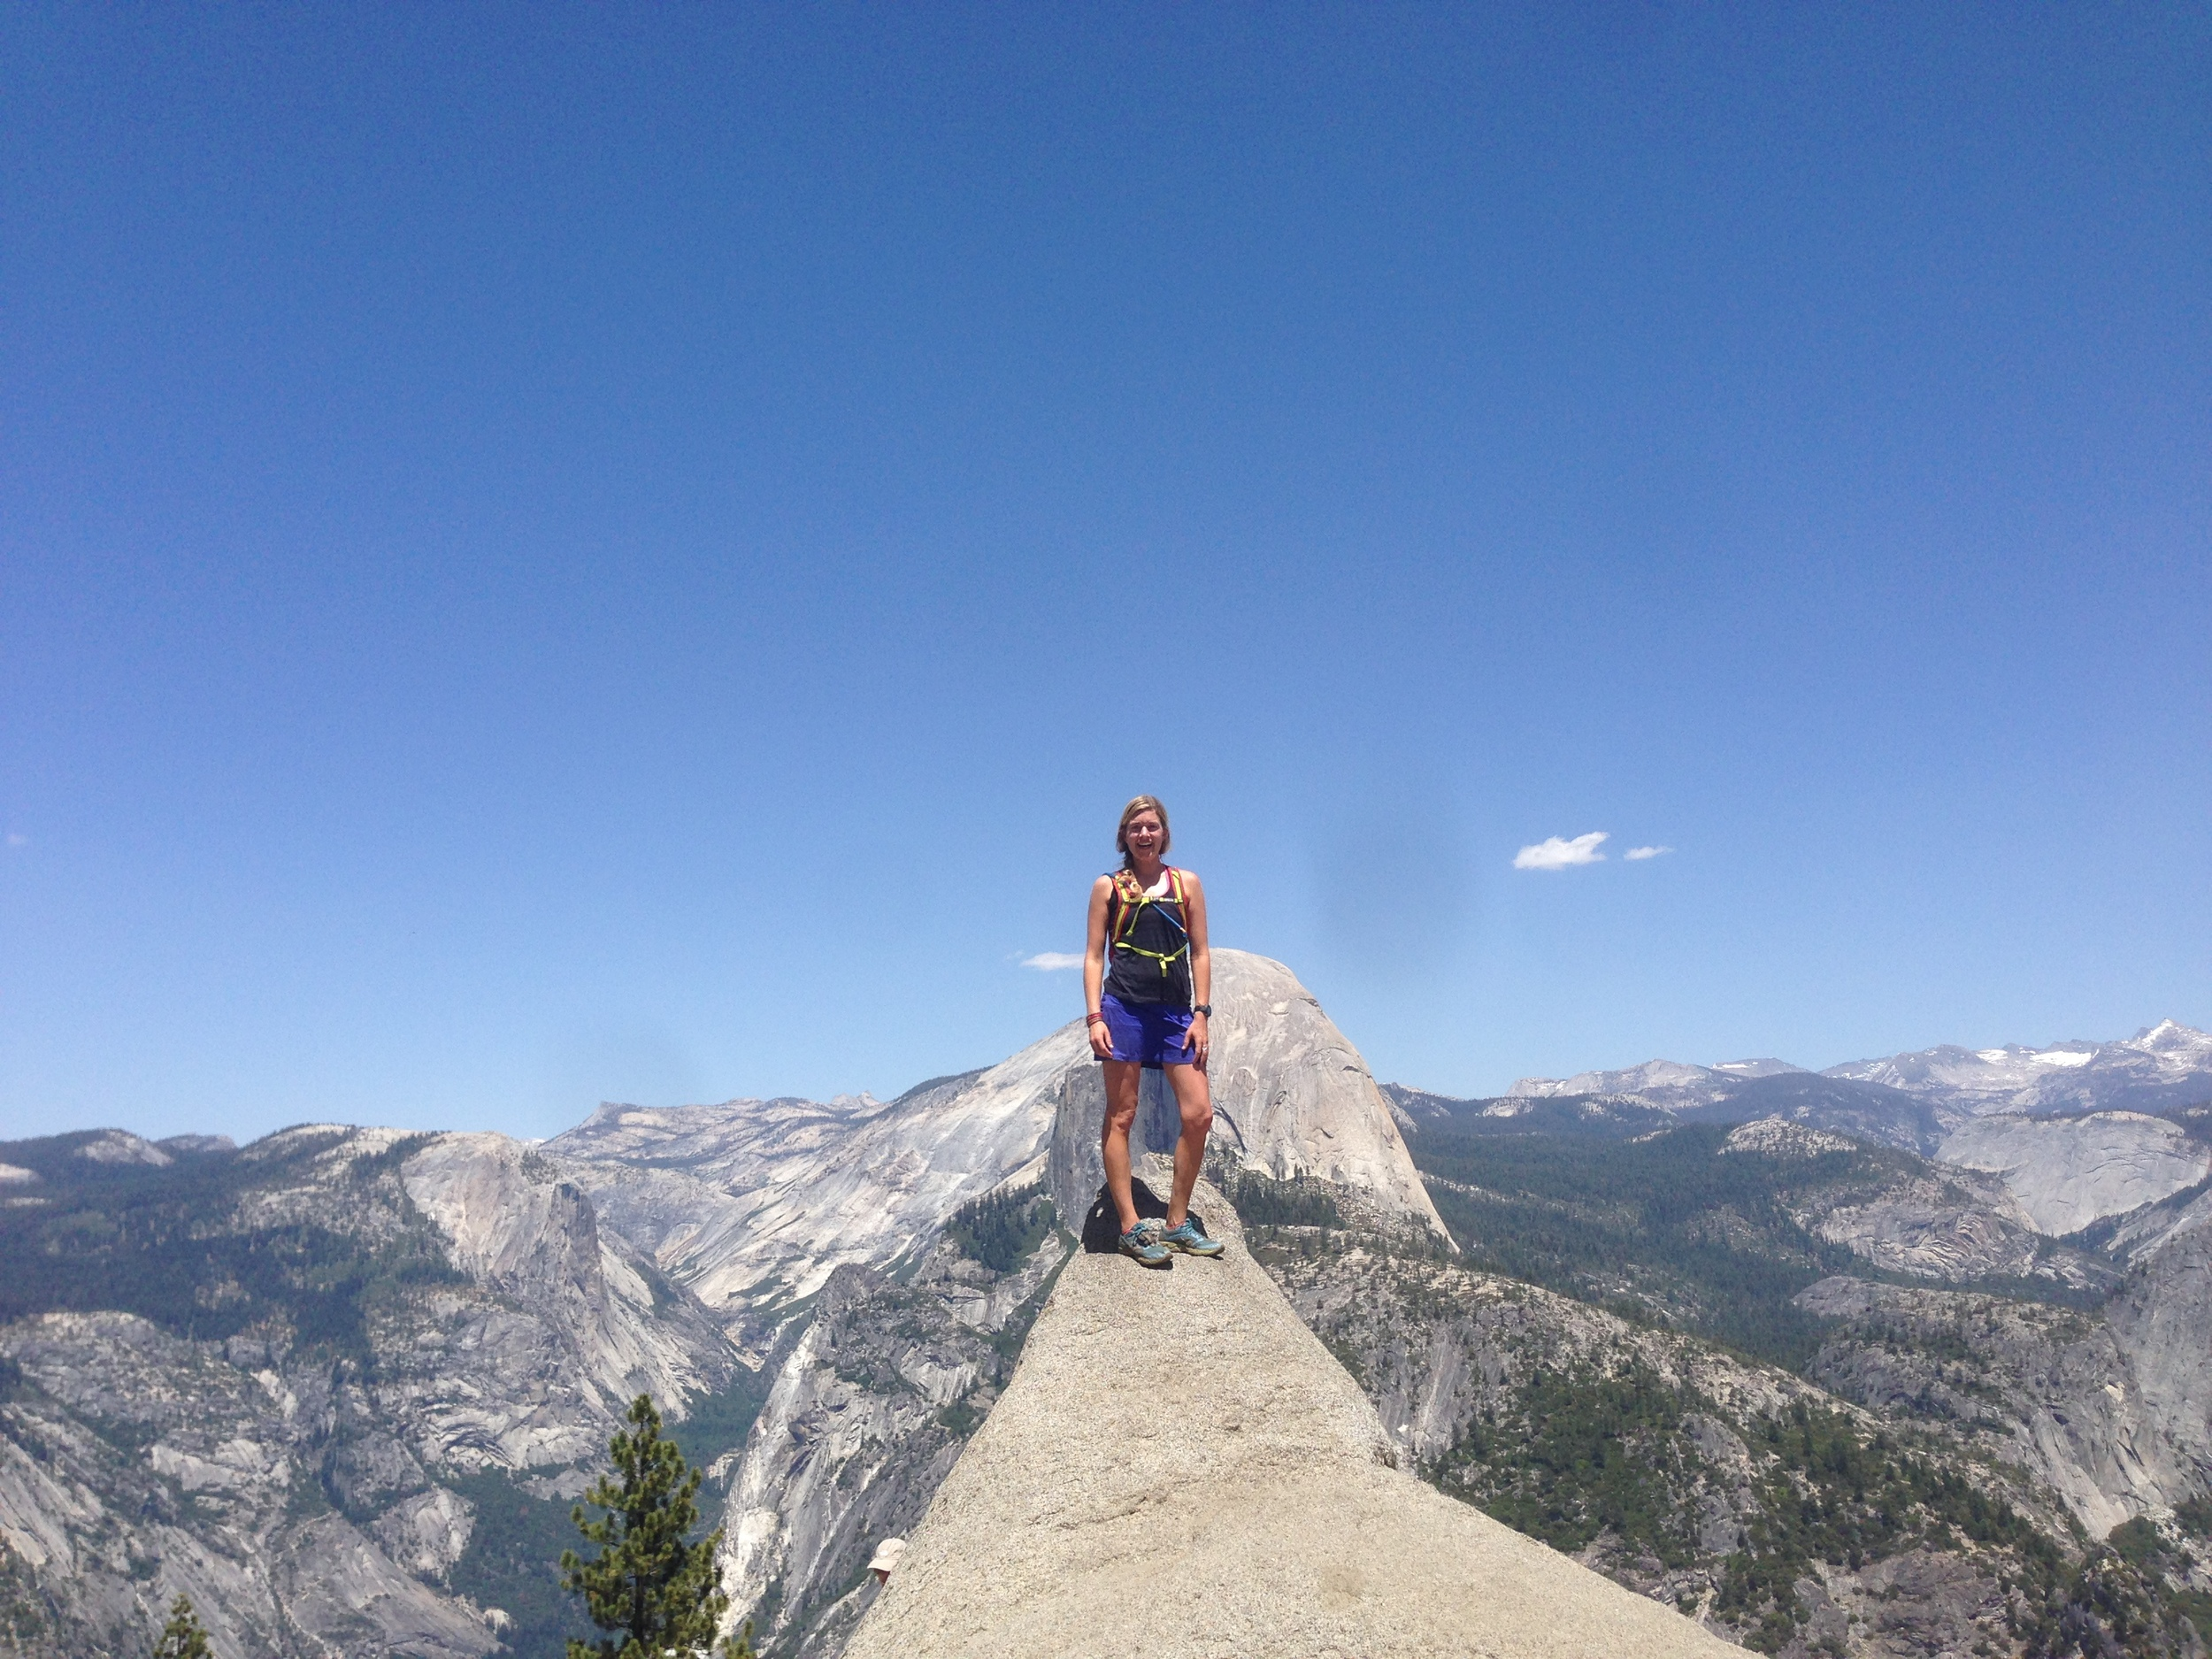 Glacier Point with a view of Half Dome, Yosemite National Park